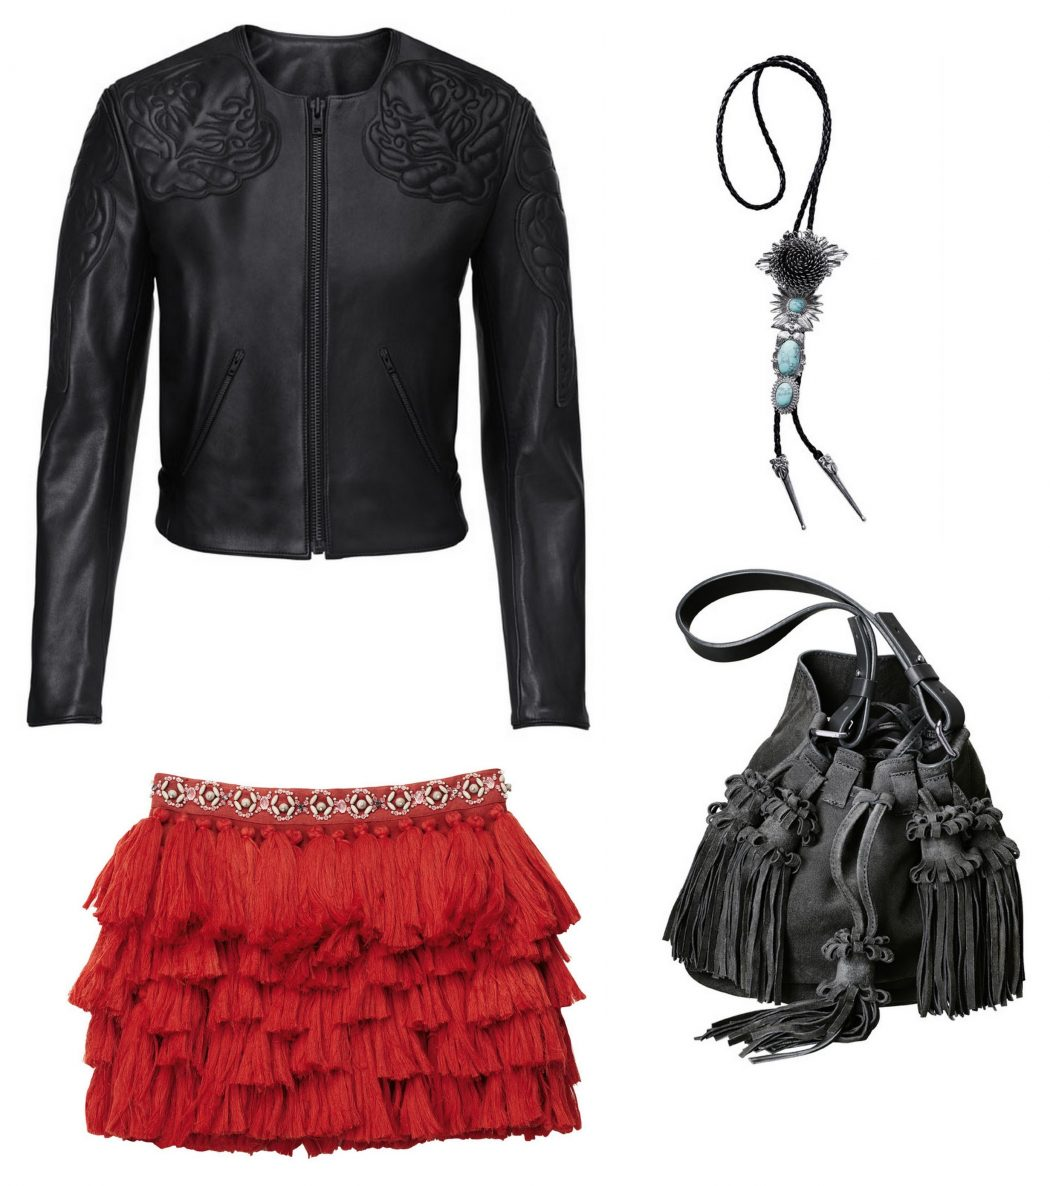 Women-Still-Life The Next 7 creative designs For Women Leather Jackets